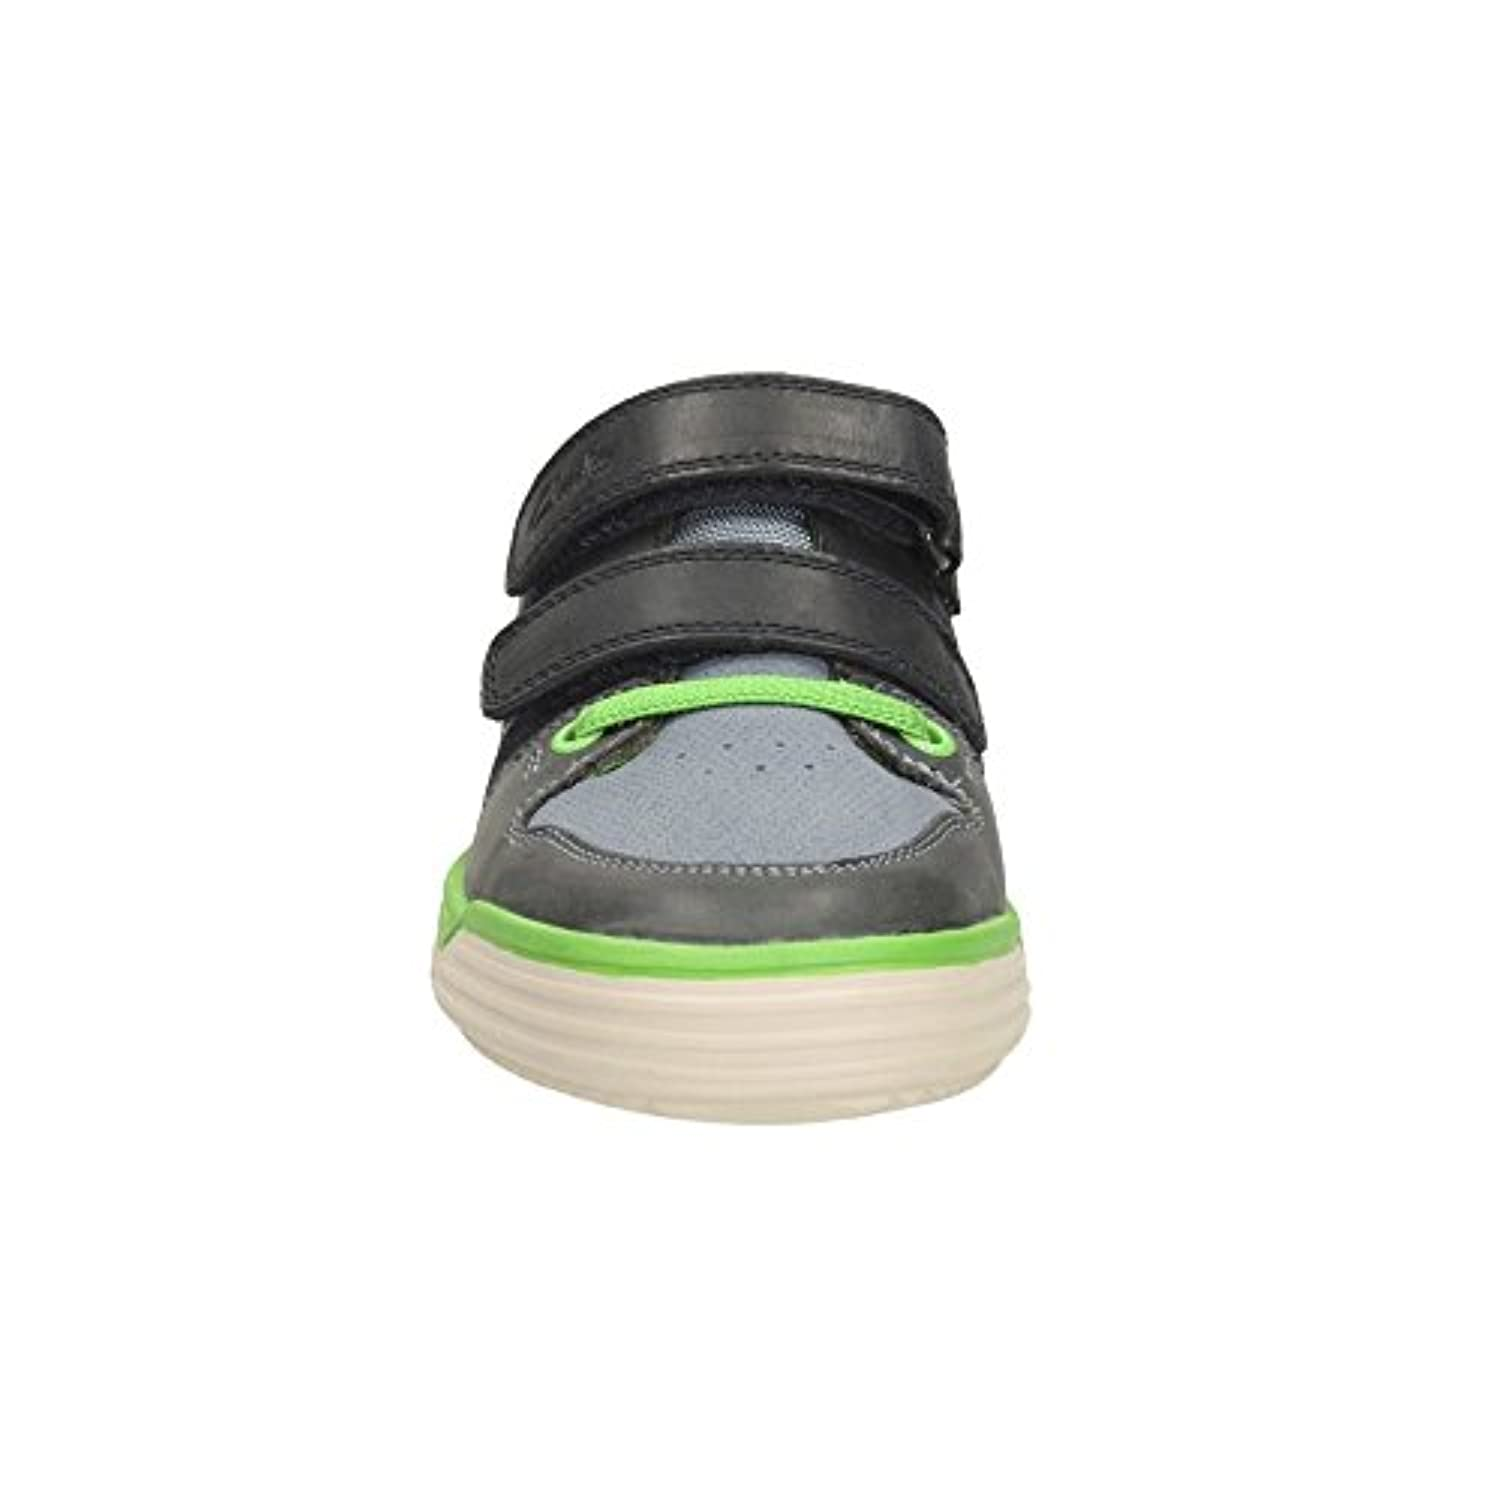 Clarks Boys Out-Of-School Chad Skate Jnr Leather Shoes In Navy Standard Fit Size 1